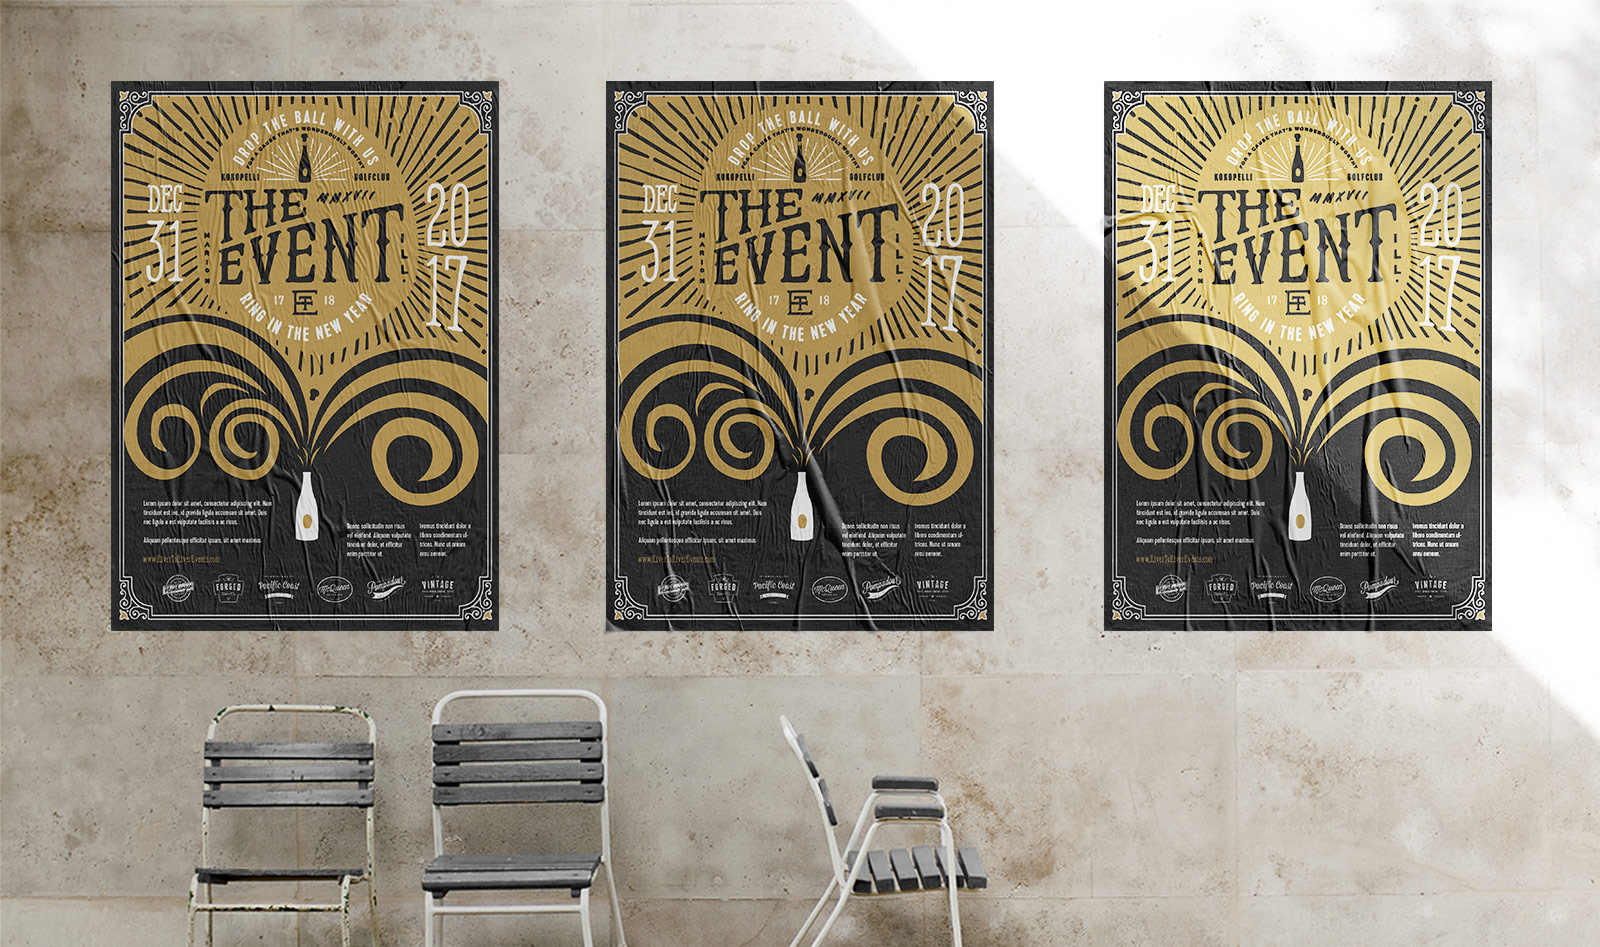 The Event New Years Eve Celebration Poster Graphic Design For Fundraiser